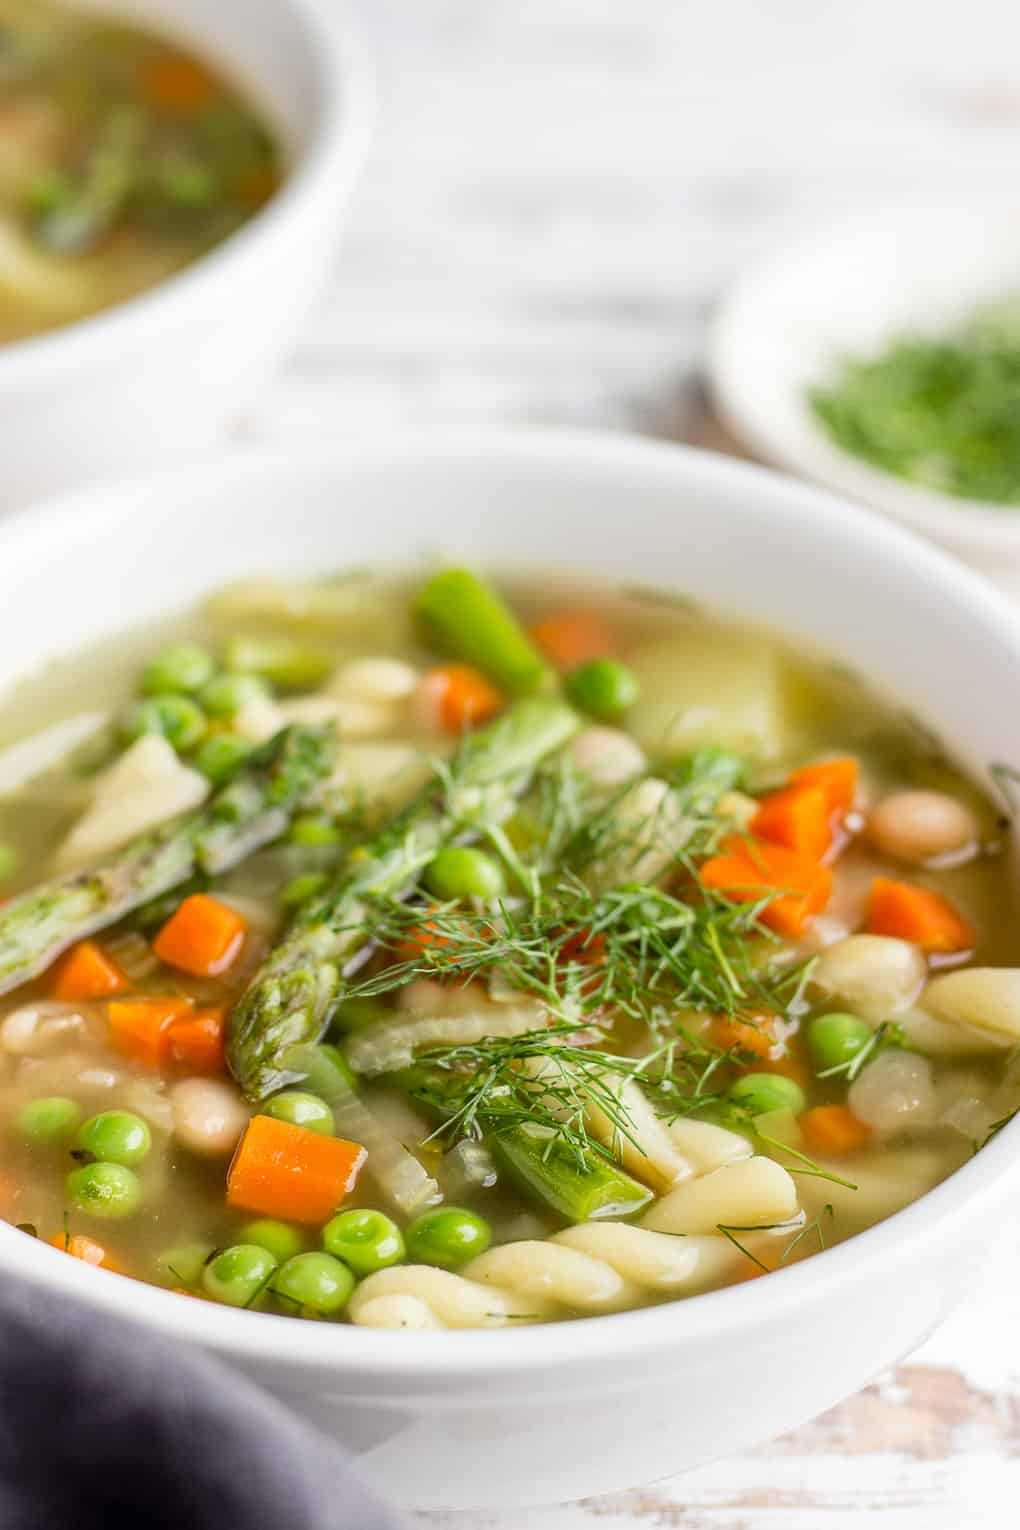 Spring Minestrone with asparagus and green peas